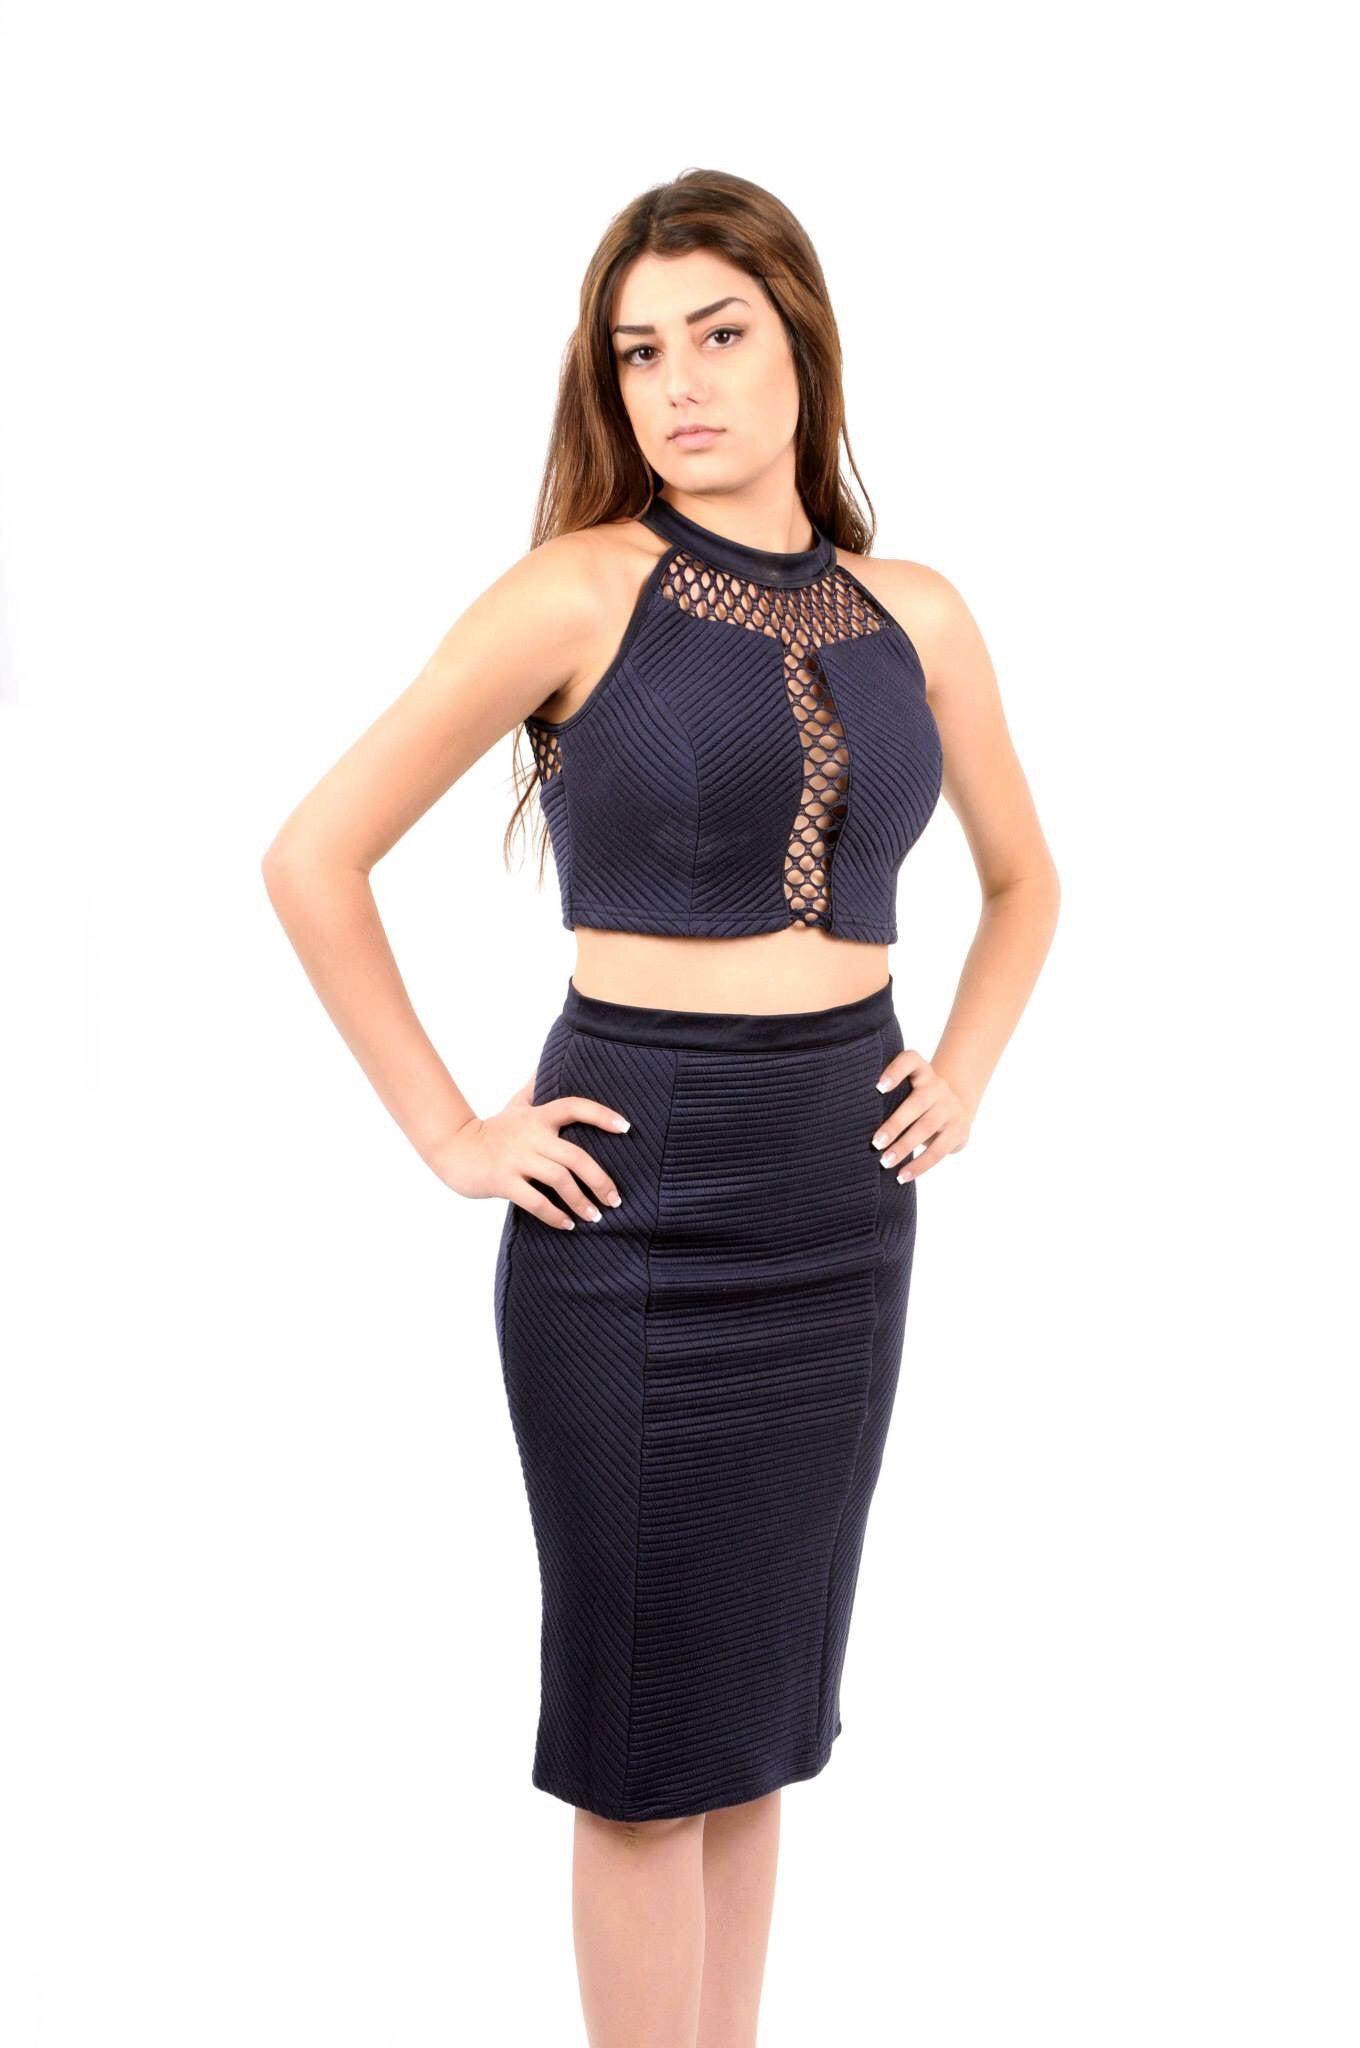 Signature Pencil Skirt - NaughtyGrl